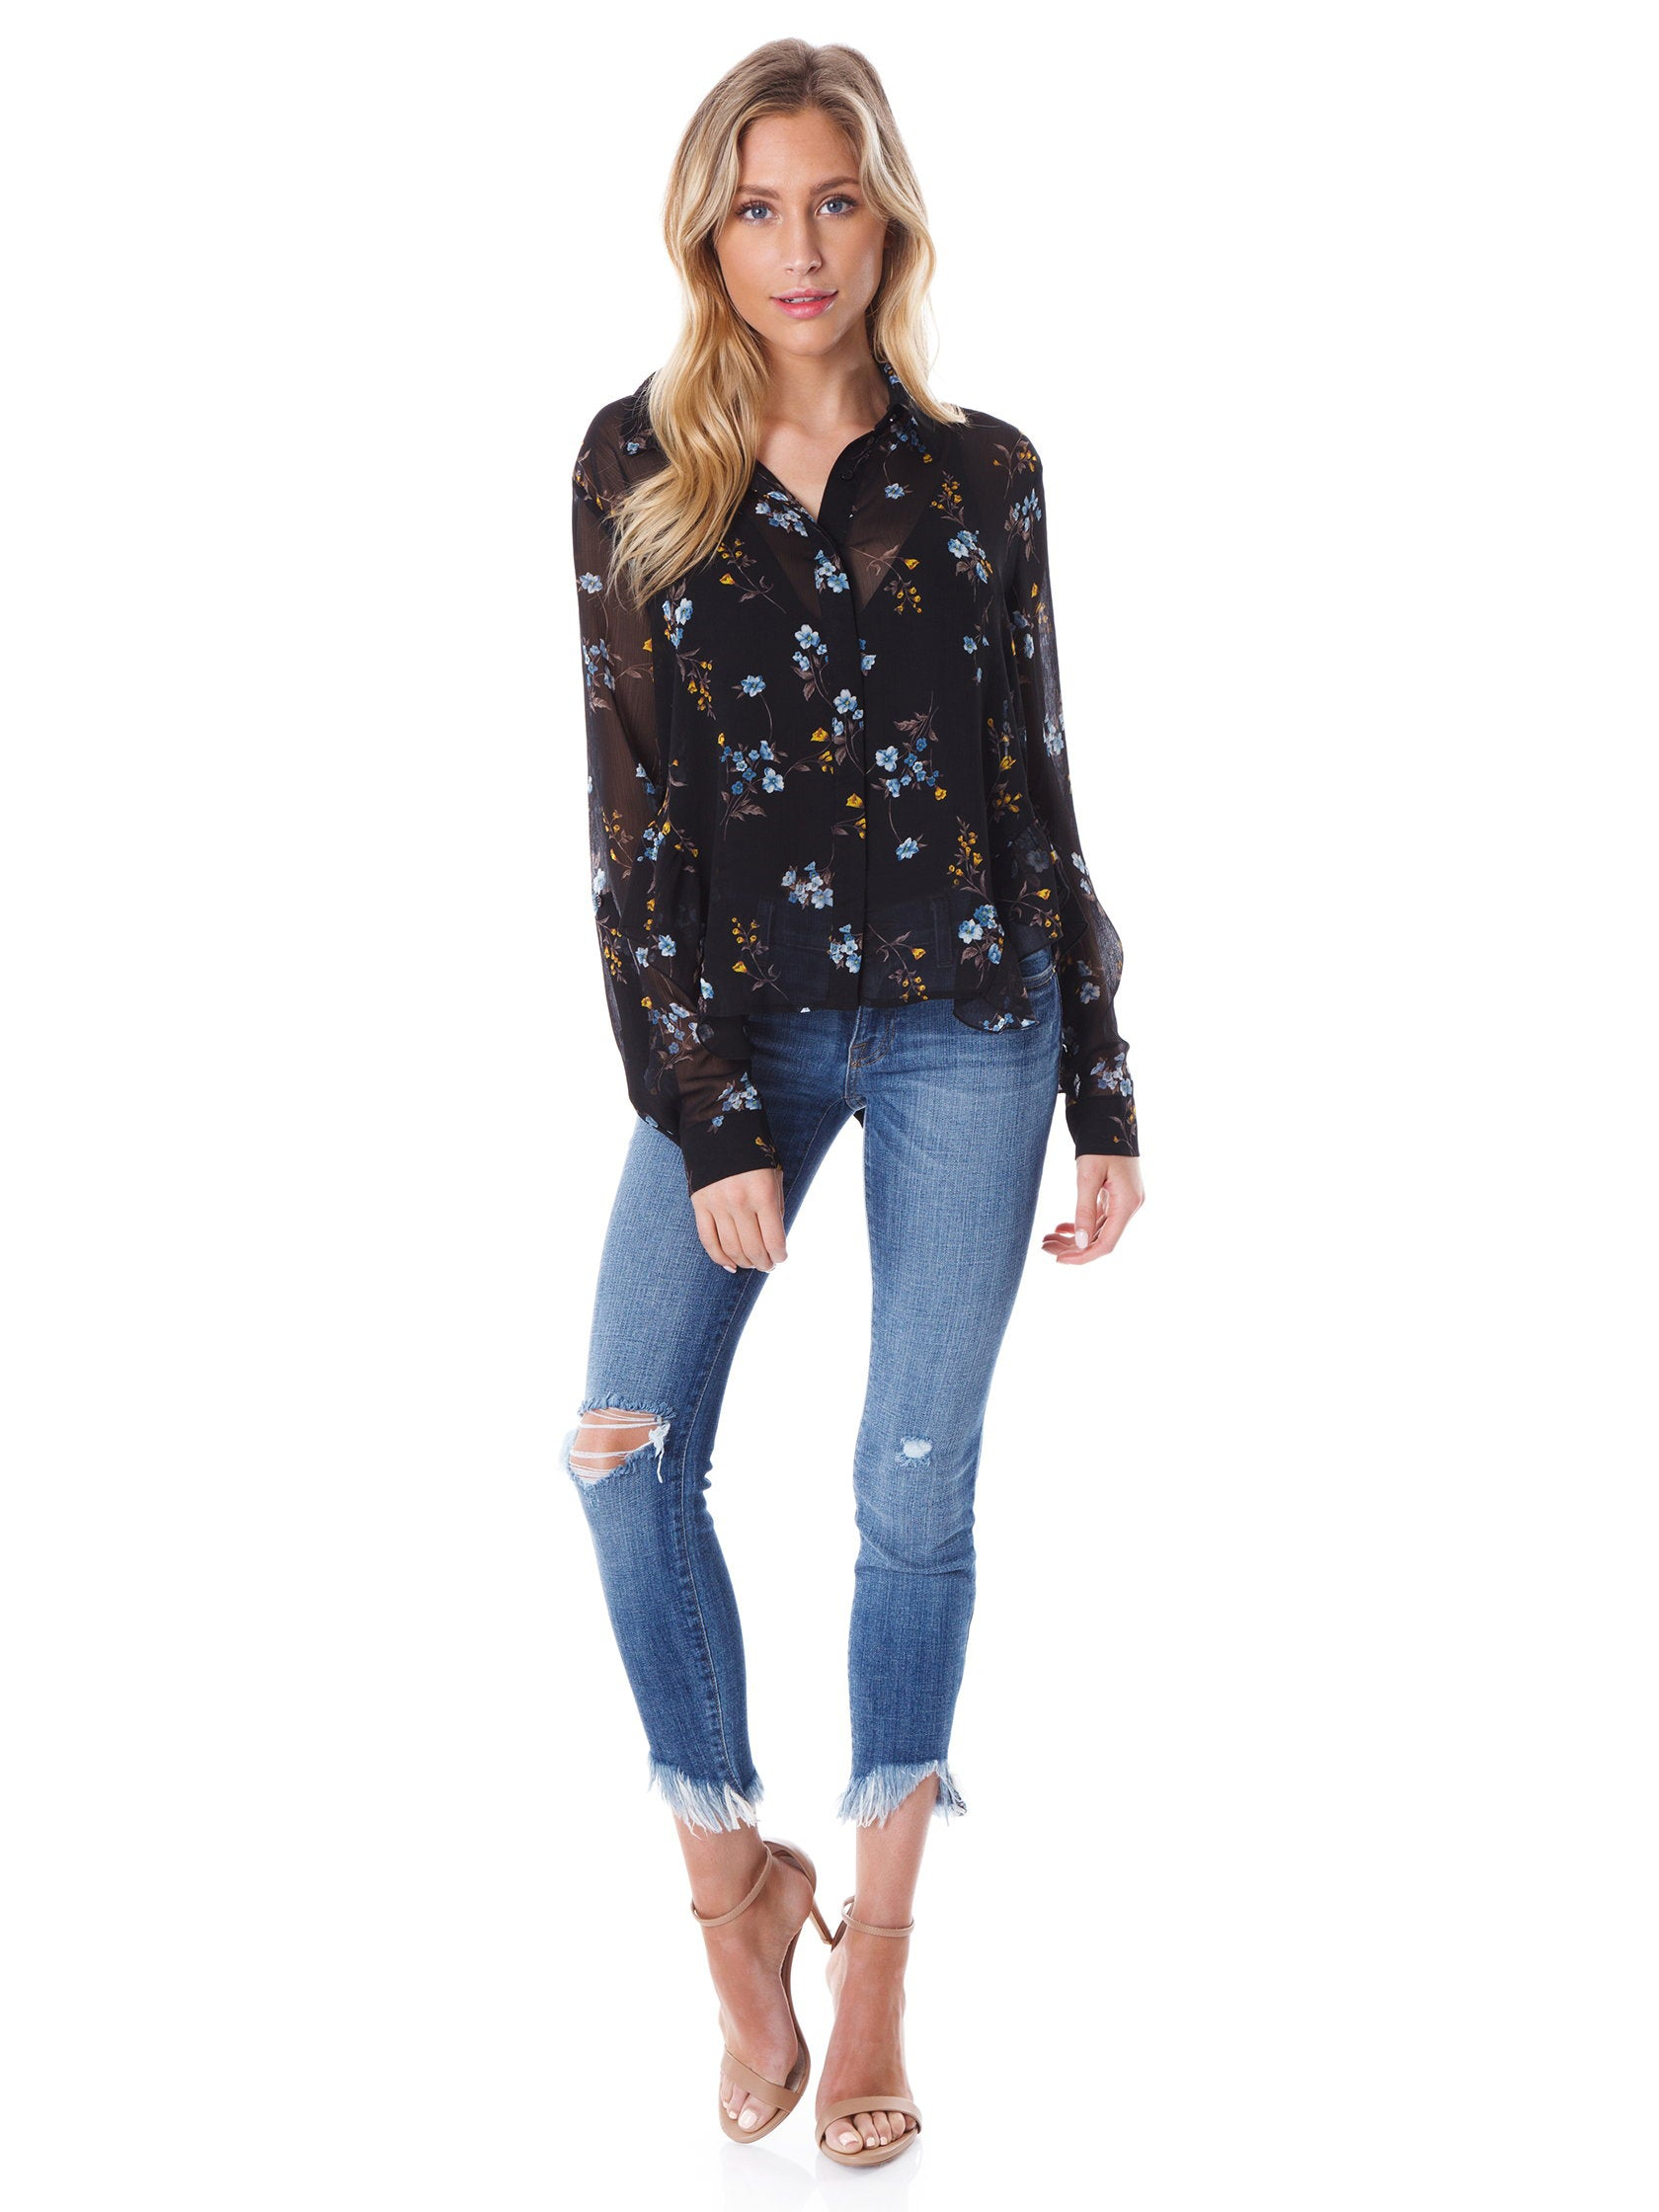 Girl wearing a top rental from FashionPass called In Full Bloom Blouse